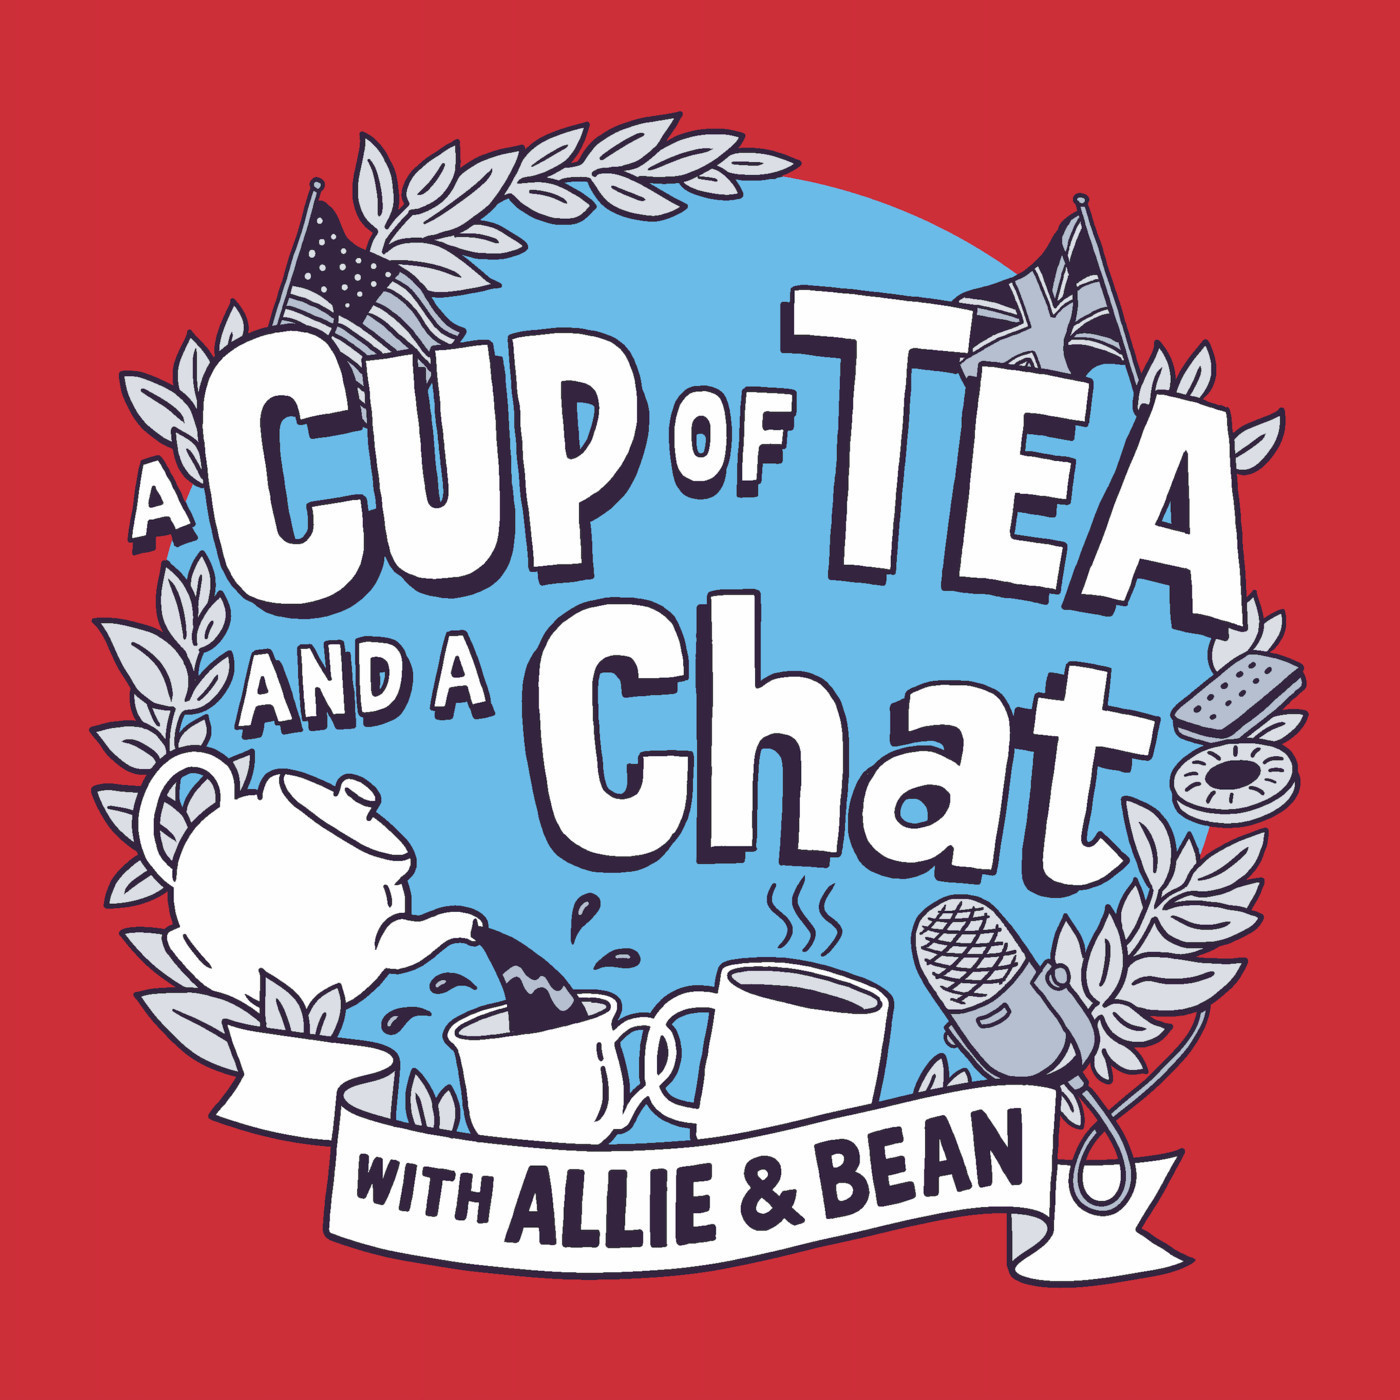 A Cup of Tea and a Chat with Allie & Bean